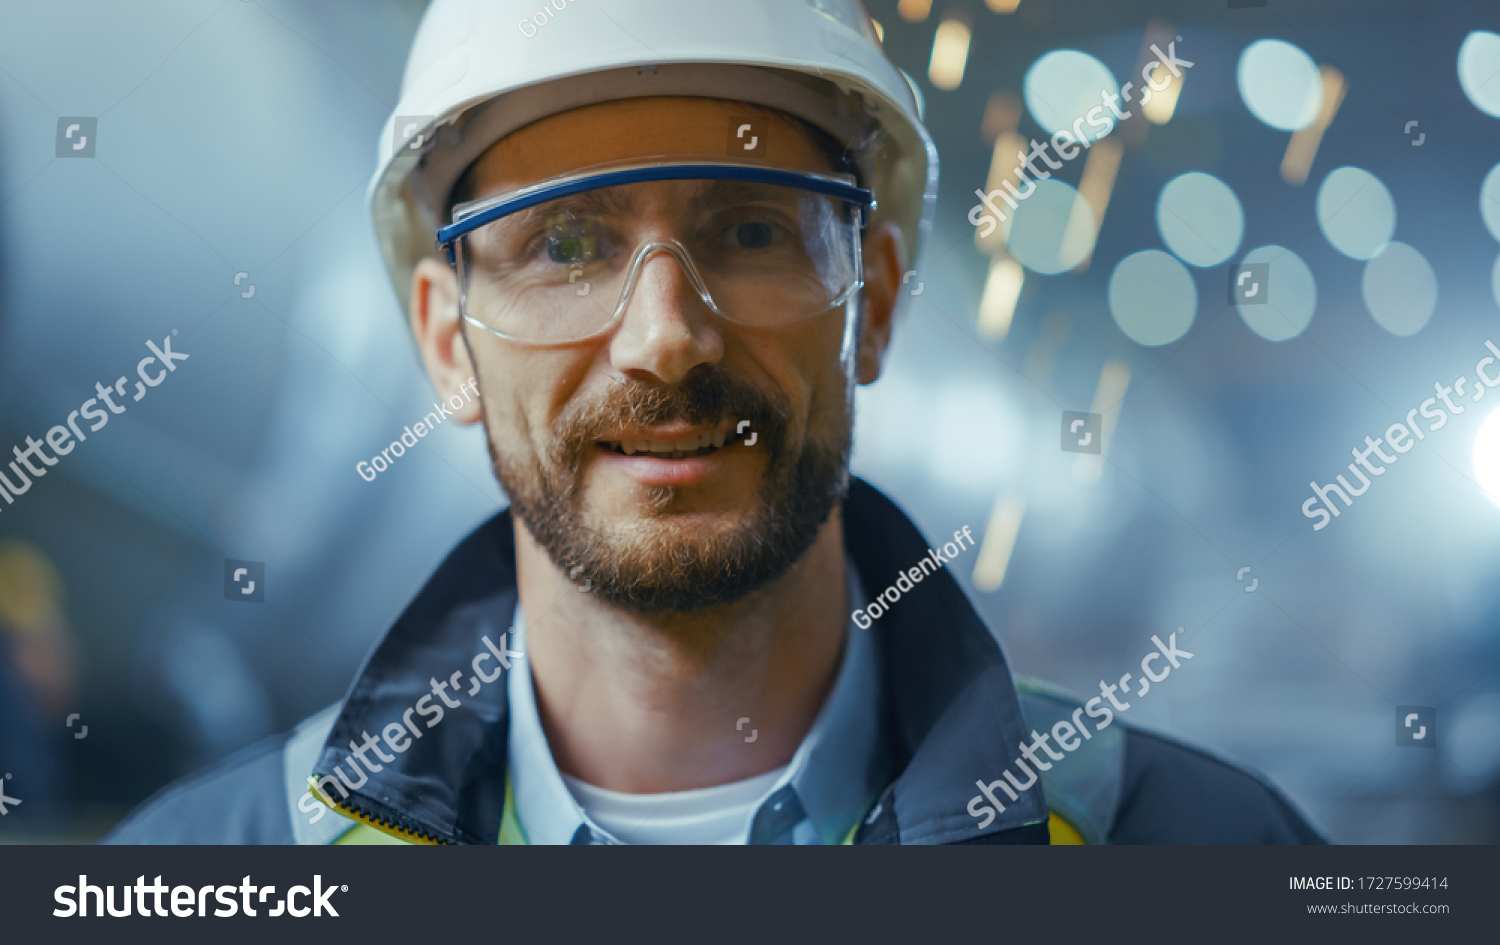 Portrait of Professional Heavy Industry Engineer / Worker Wearing Safety Uniform, Goggles and Hard Hat Smiling. In the Background Unfocused Large Industrial Factory where Welding Sparks Flying #1727599414